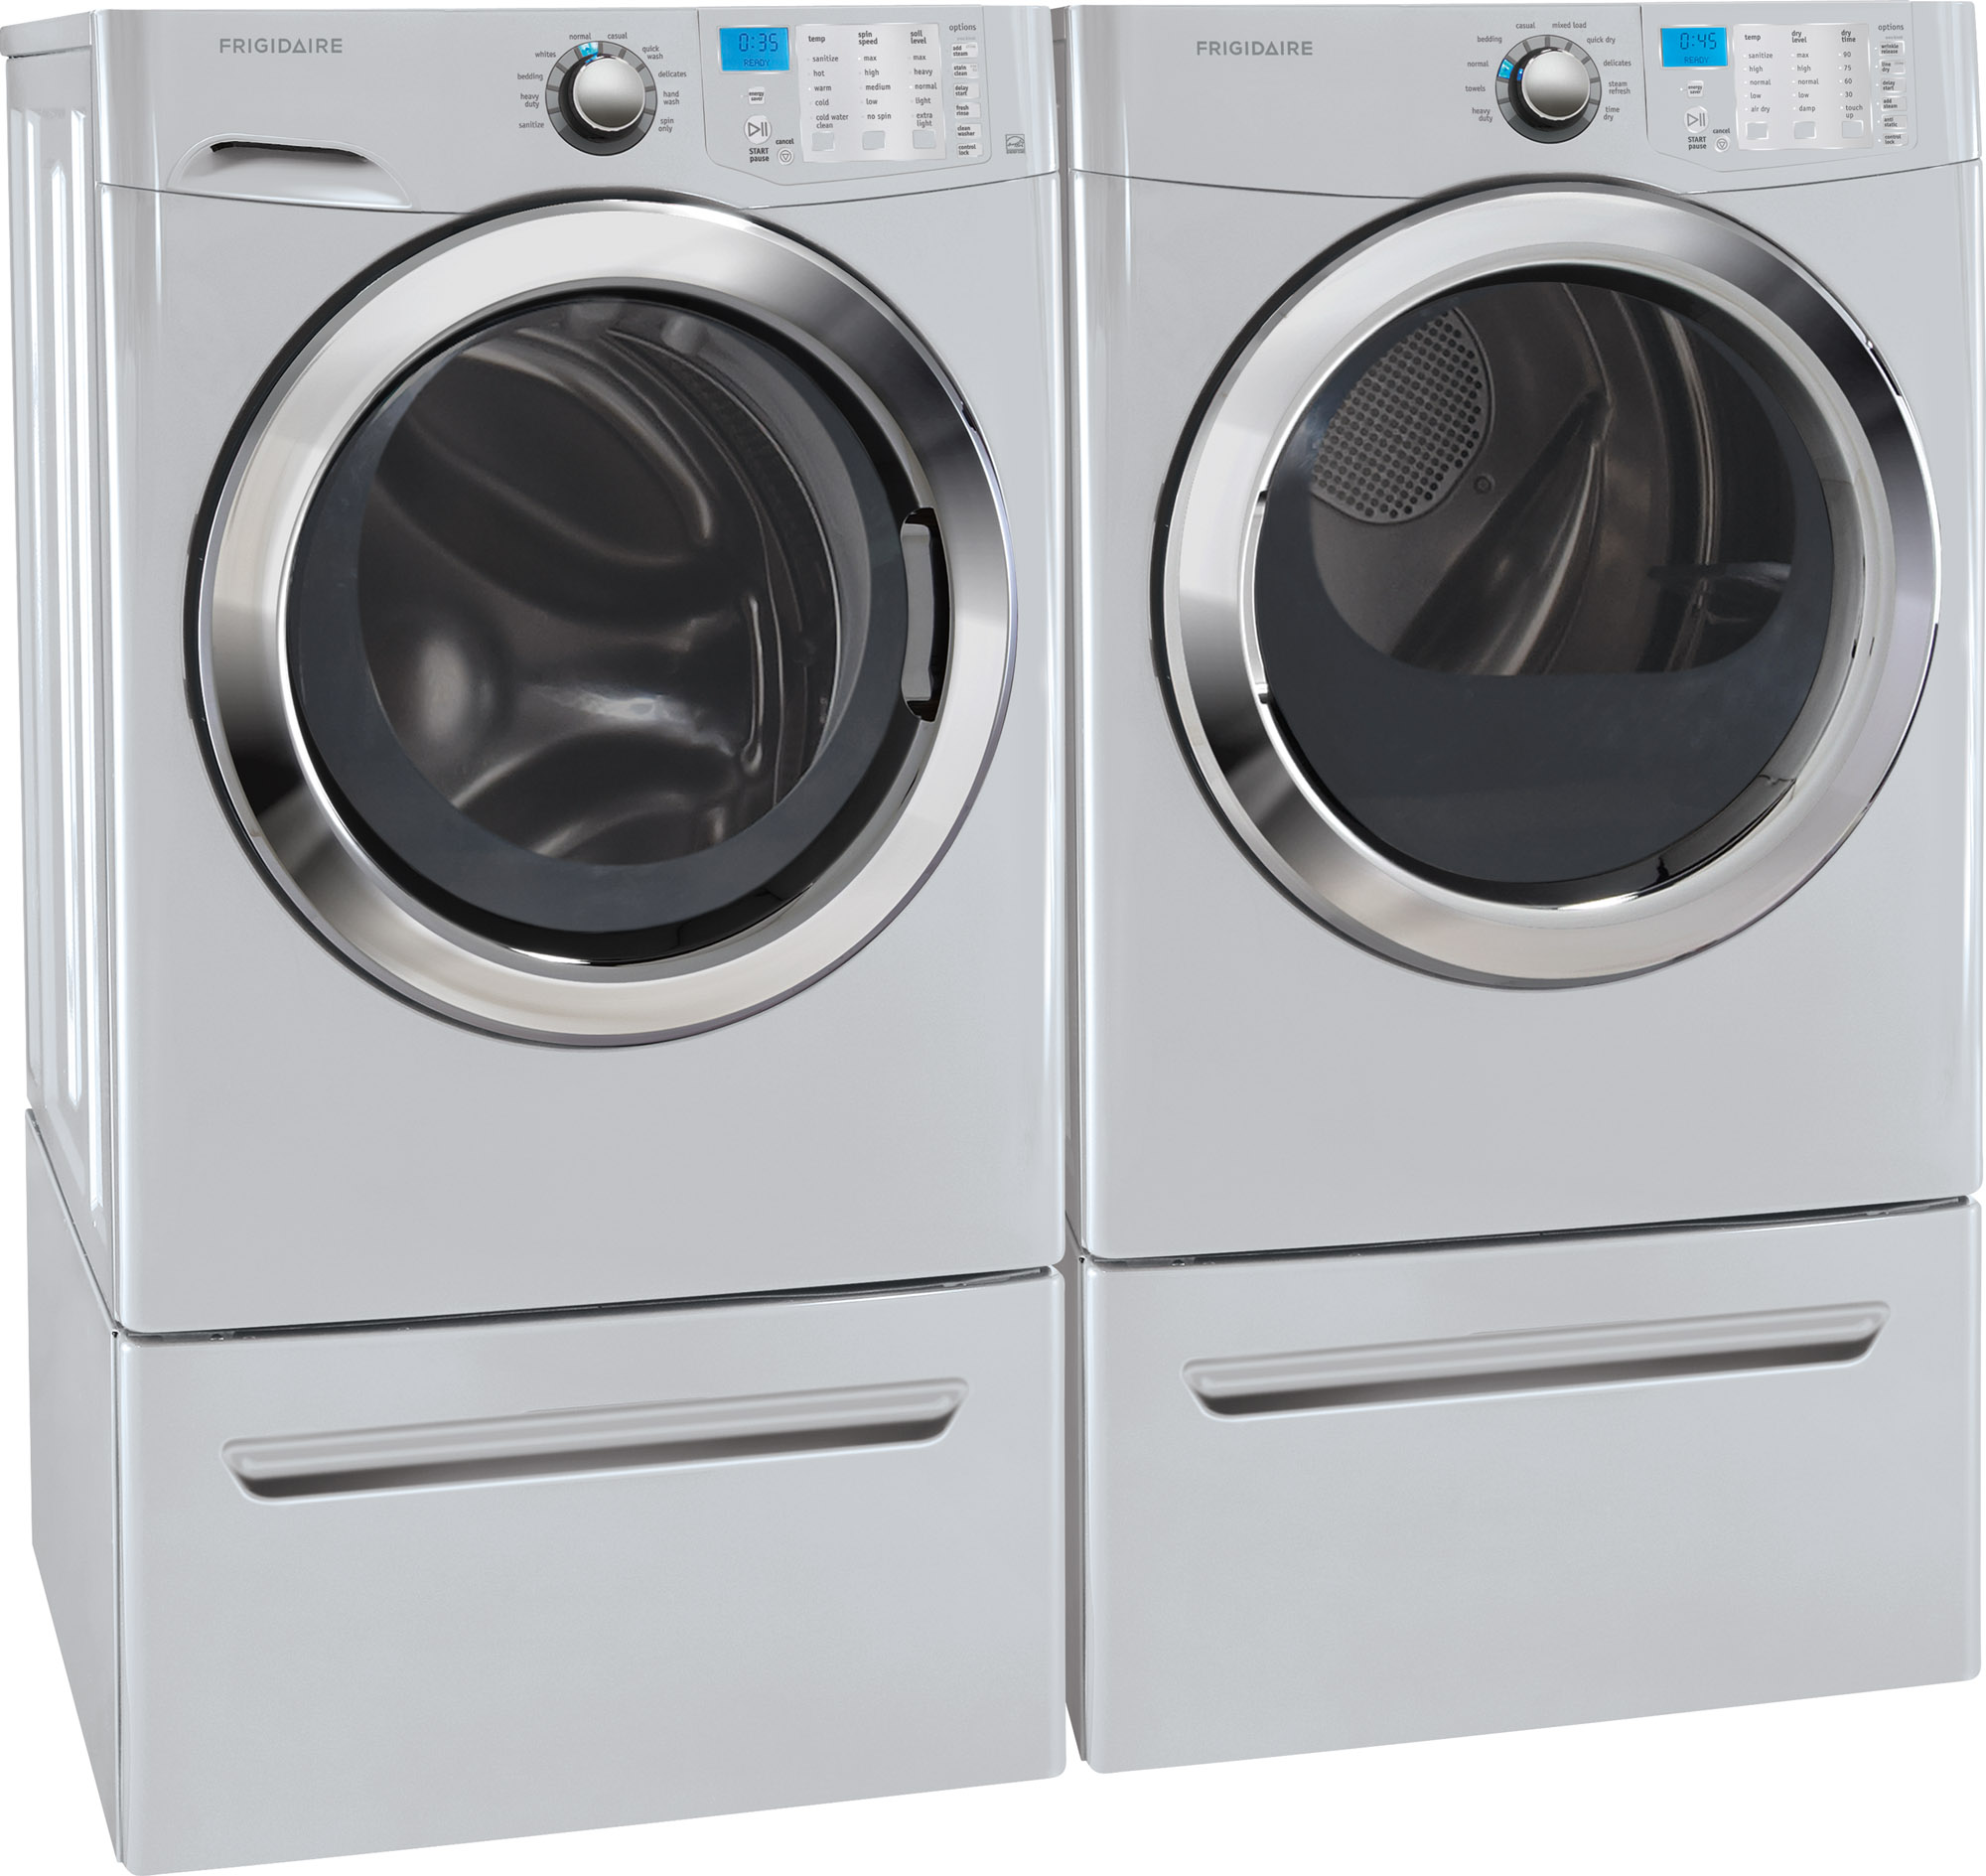 New Washer And Dryer Frigidaire Introduces New Front Load Washer And Dryer Electrolux